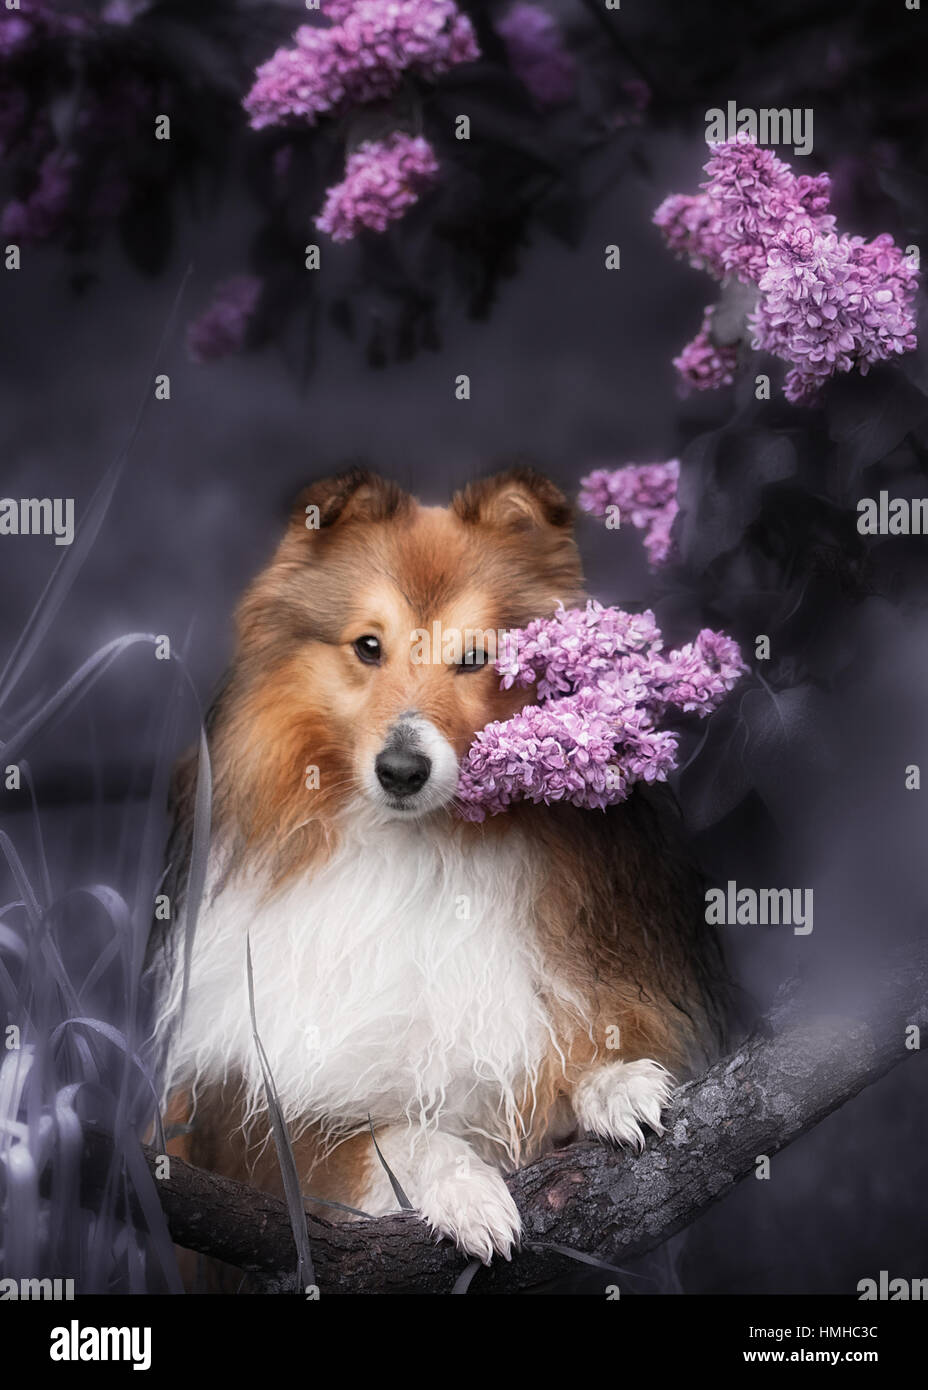 Cute little Sheltie dog with a bouquet of flowers Stock Photo ...